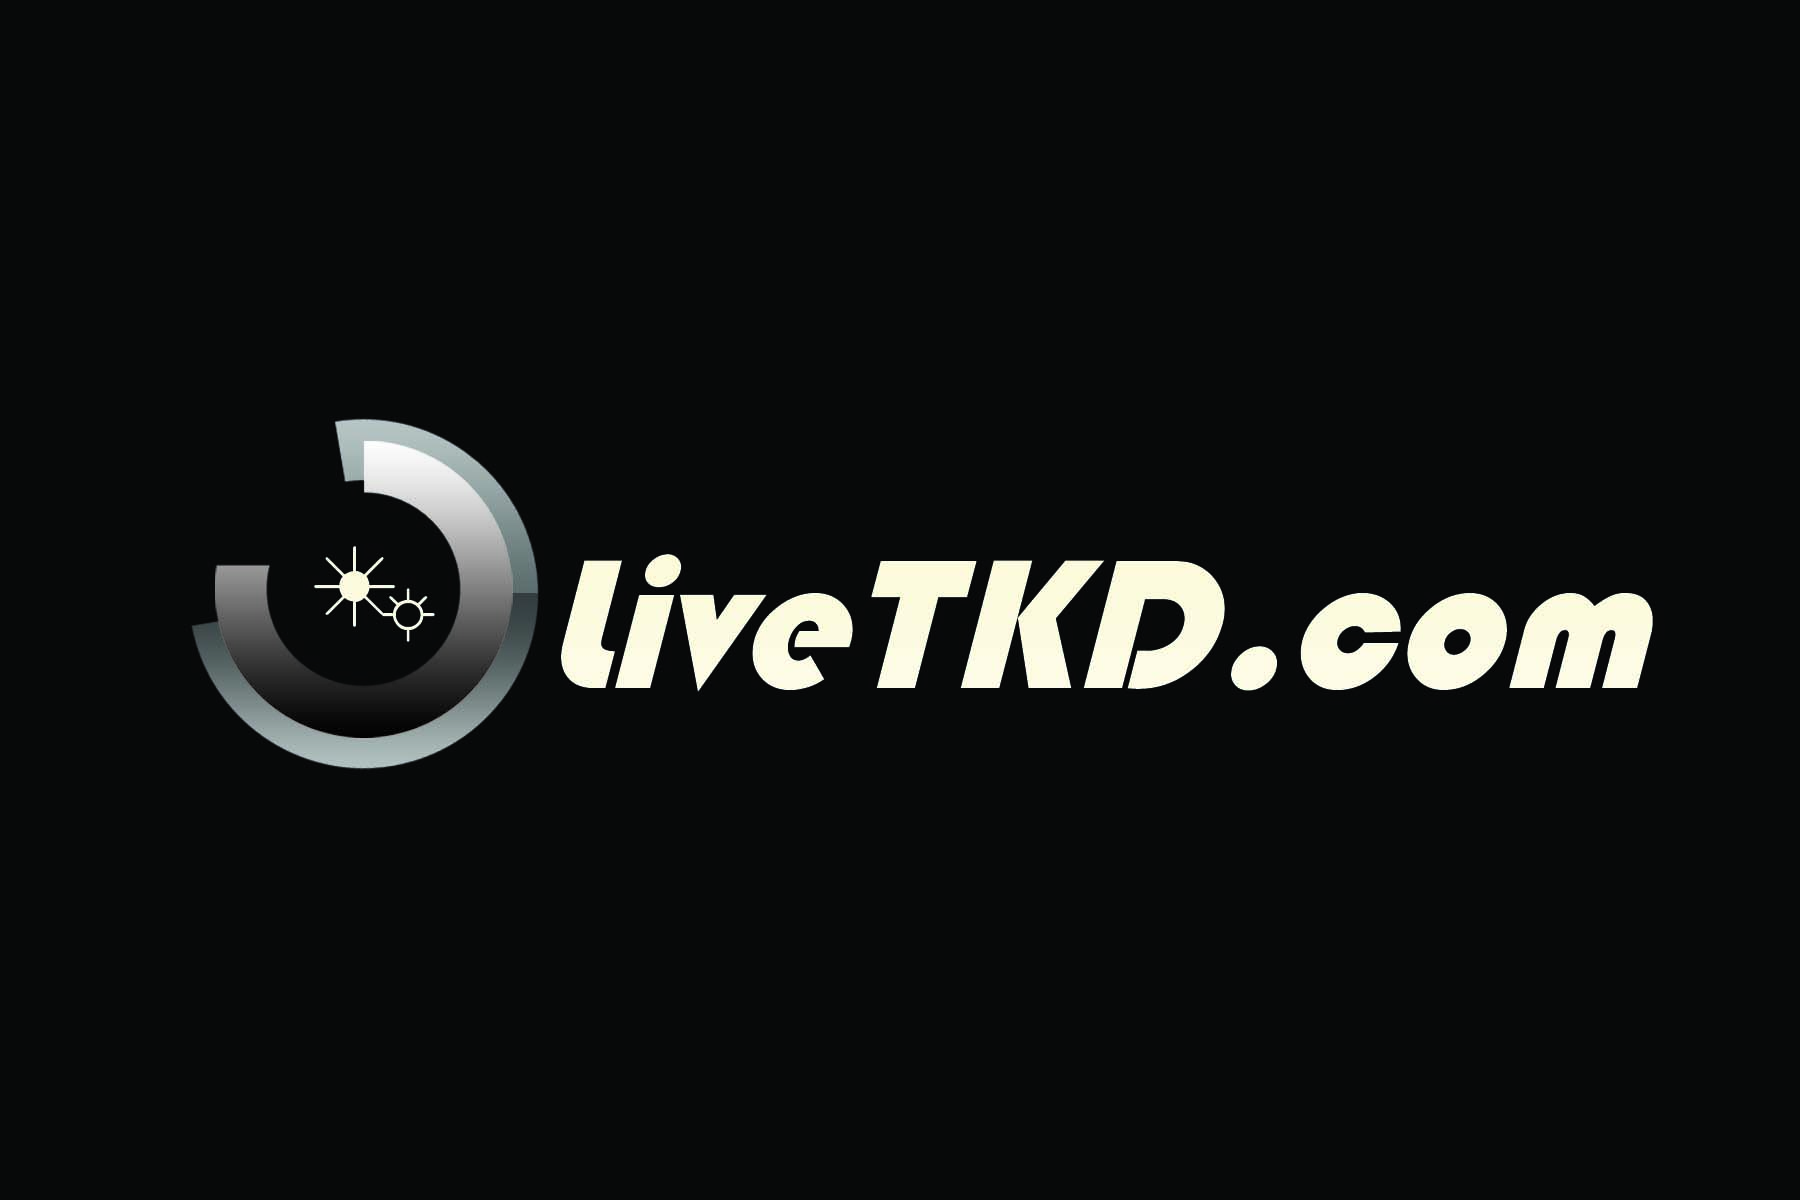 Logo Design by Jastinejay Manliguez - Entry No. 11 in the Logo Design Contest New Logo Design for LiveTKD.com.